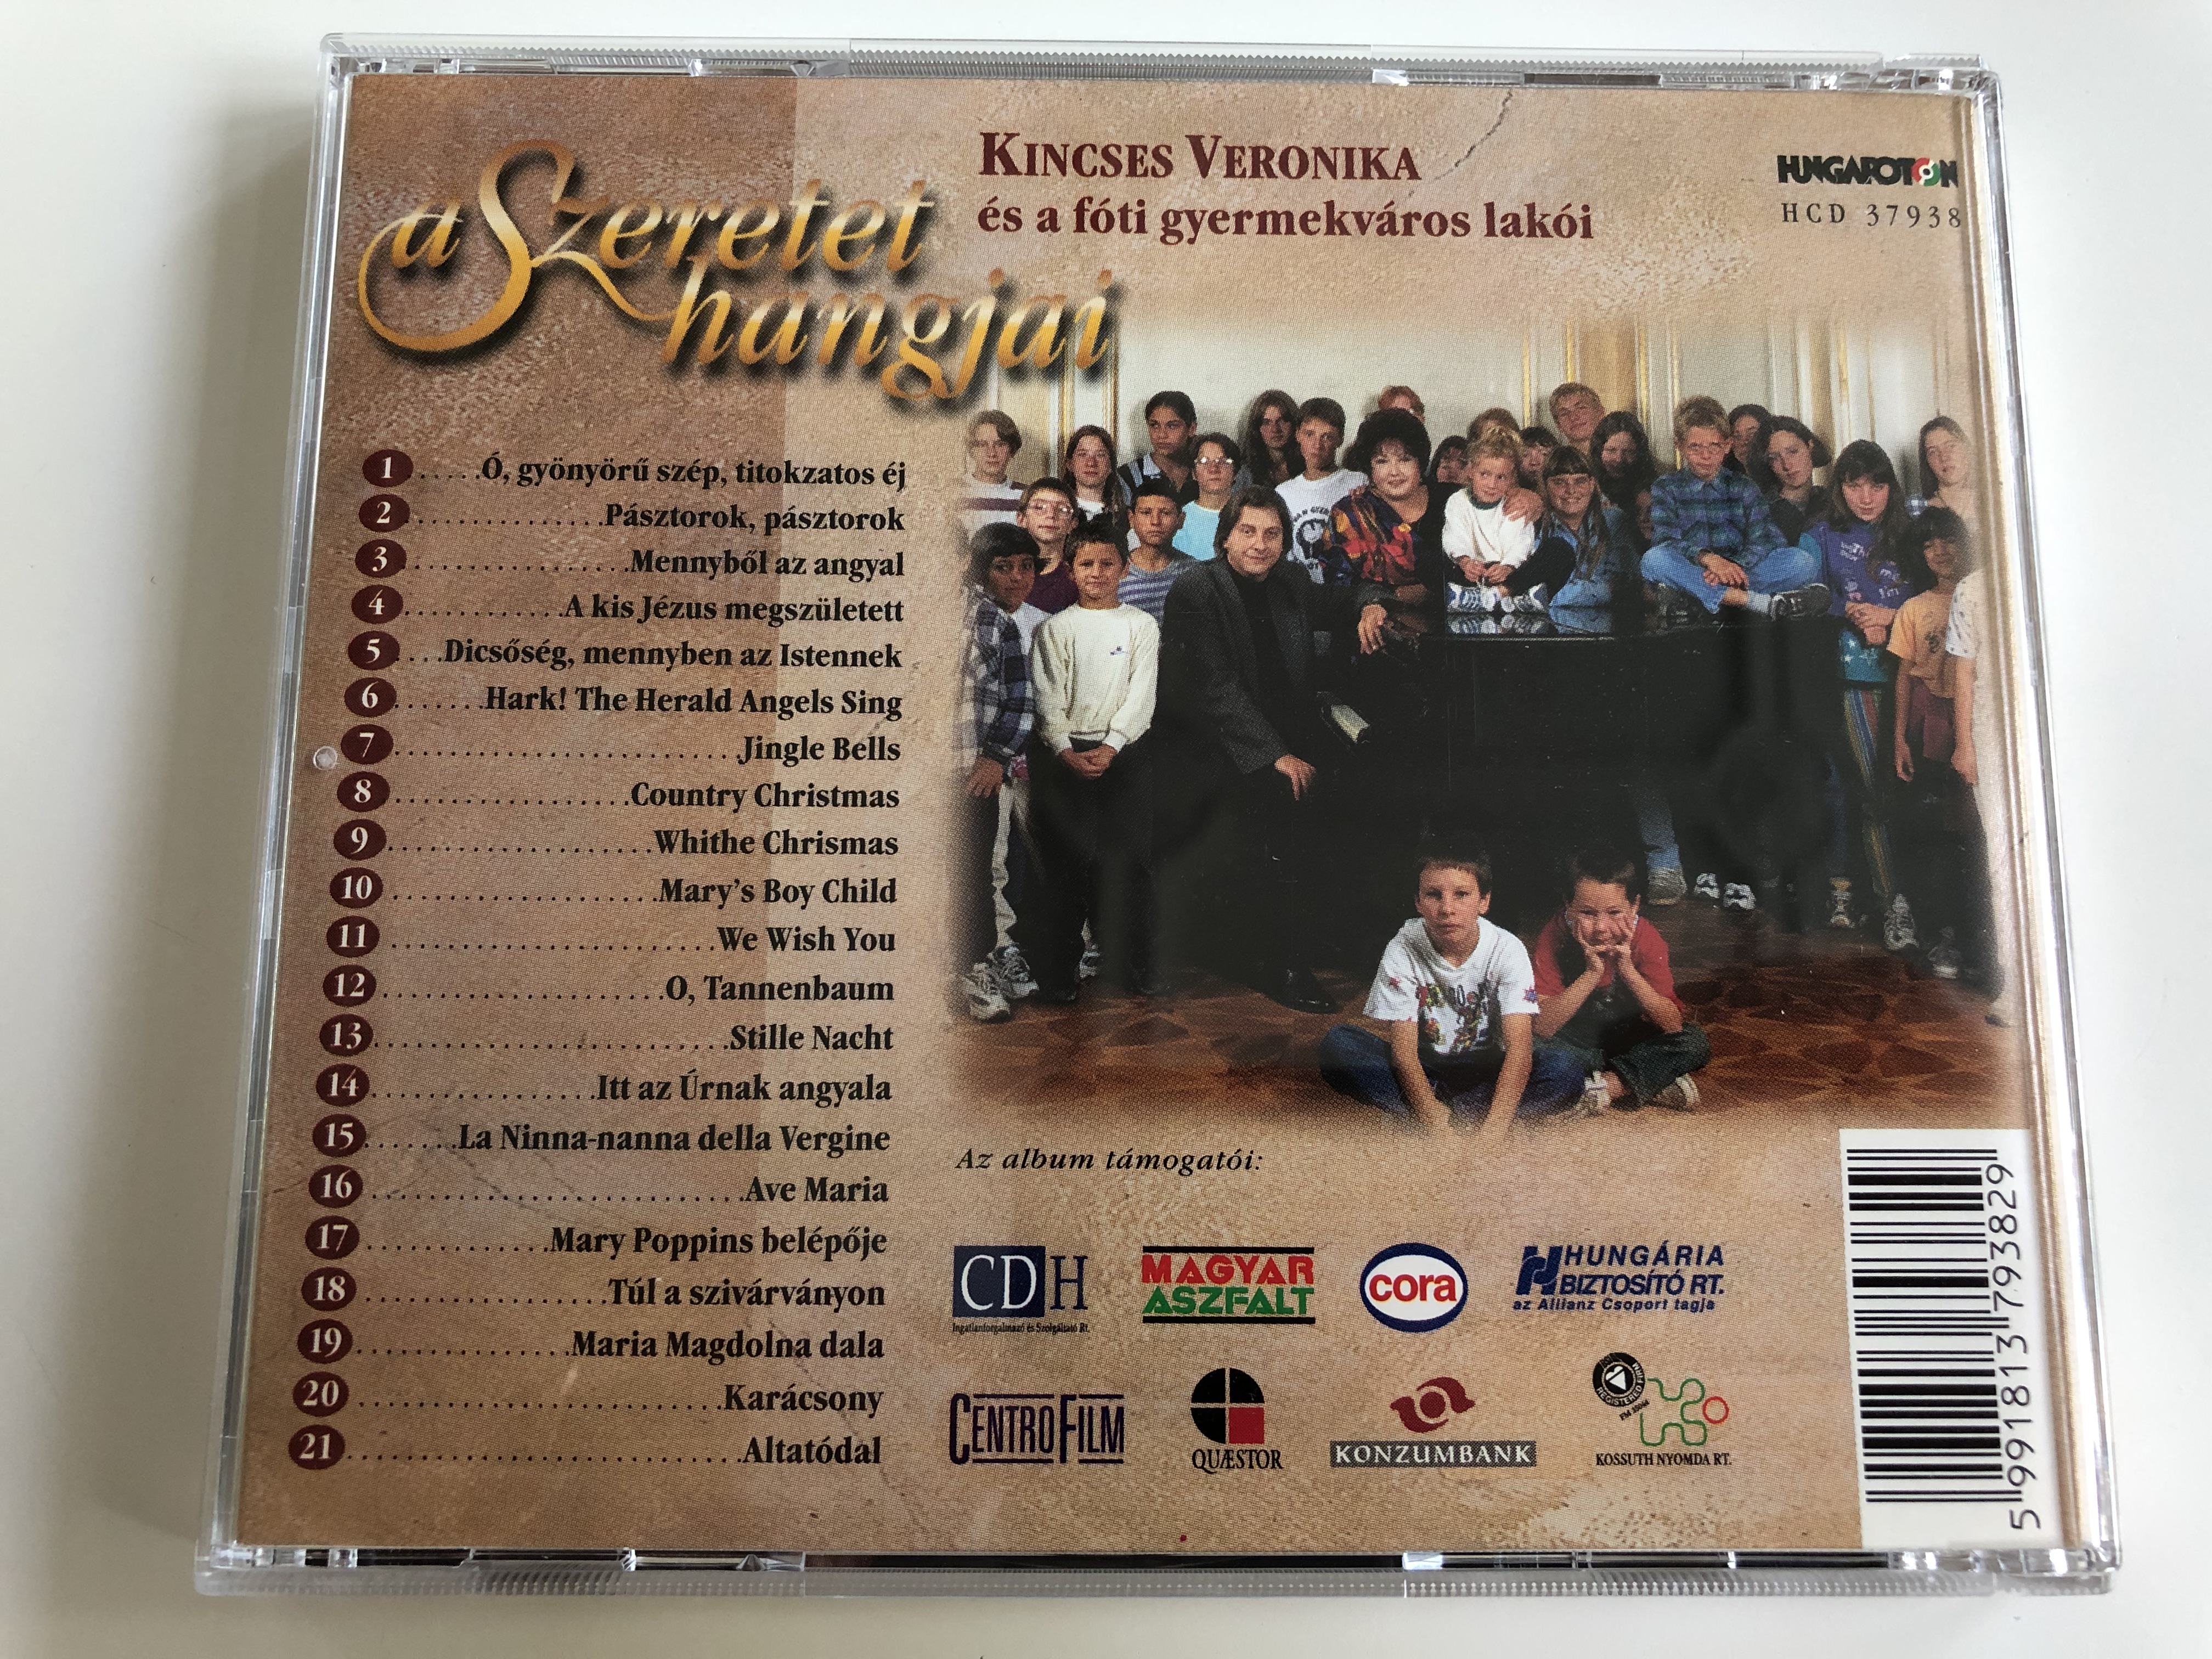 kincses-veronika-s-a-f-ti-gyermekv-ros-lak-i-a-szeretet-hangjai-hungaroton-hcd37938-hungarian-christmas-songs-and-other-popular-songs-7-.jpg